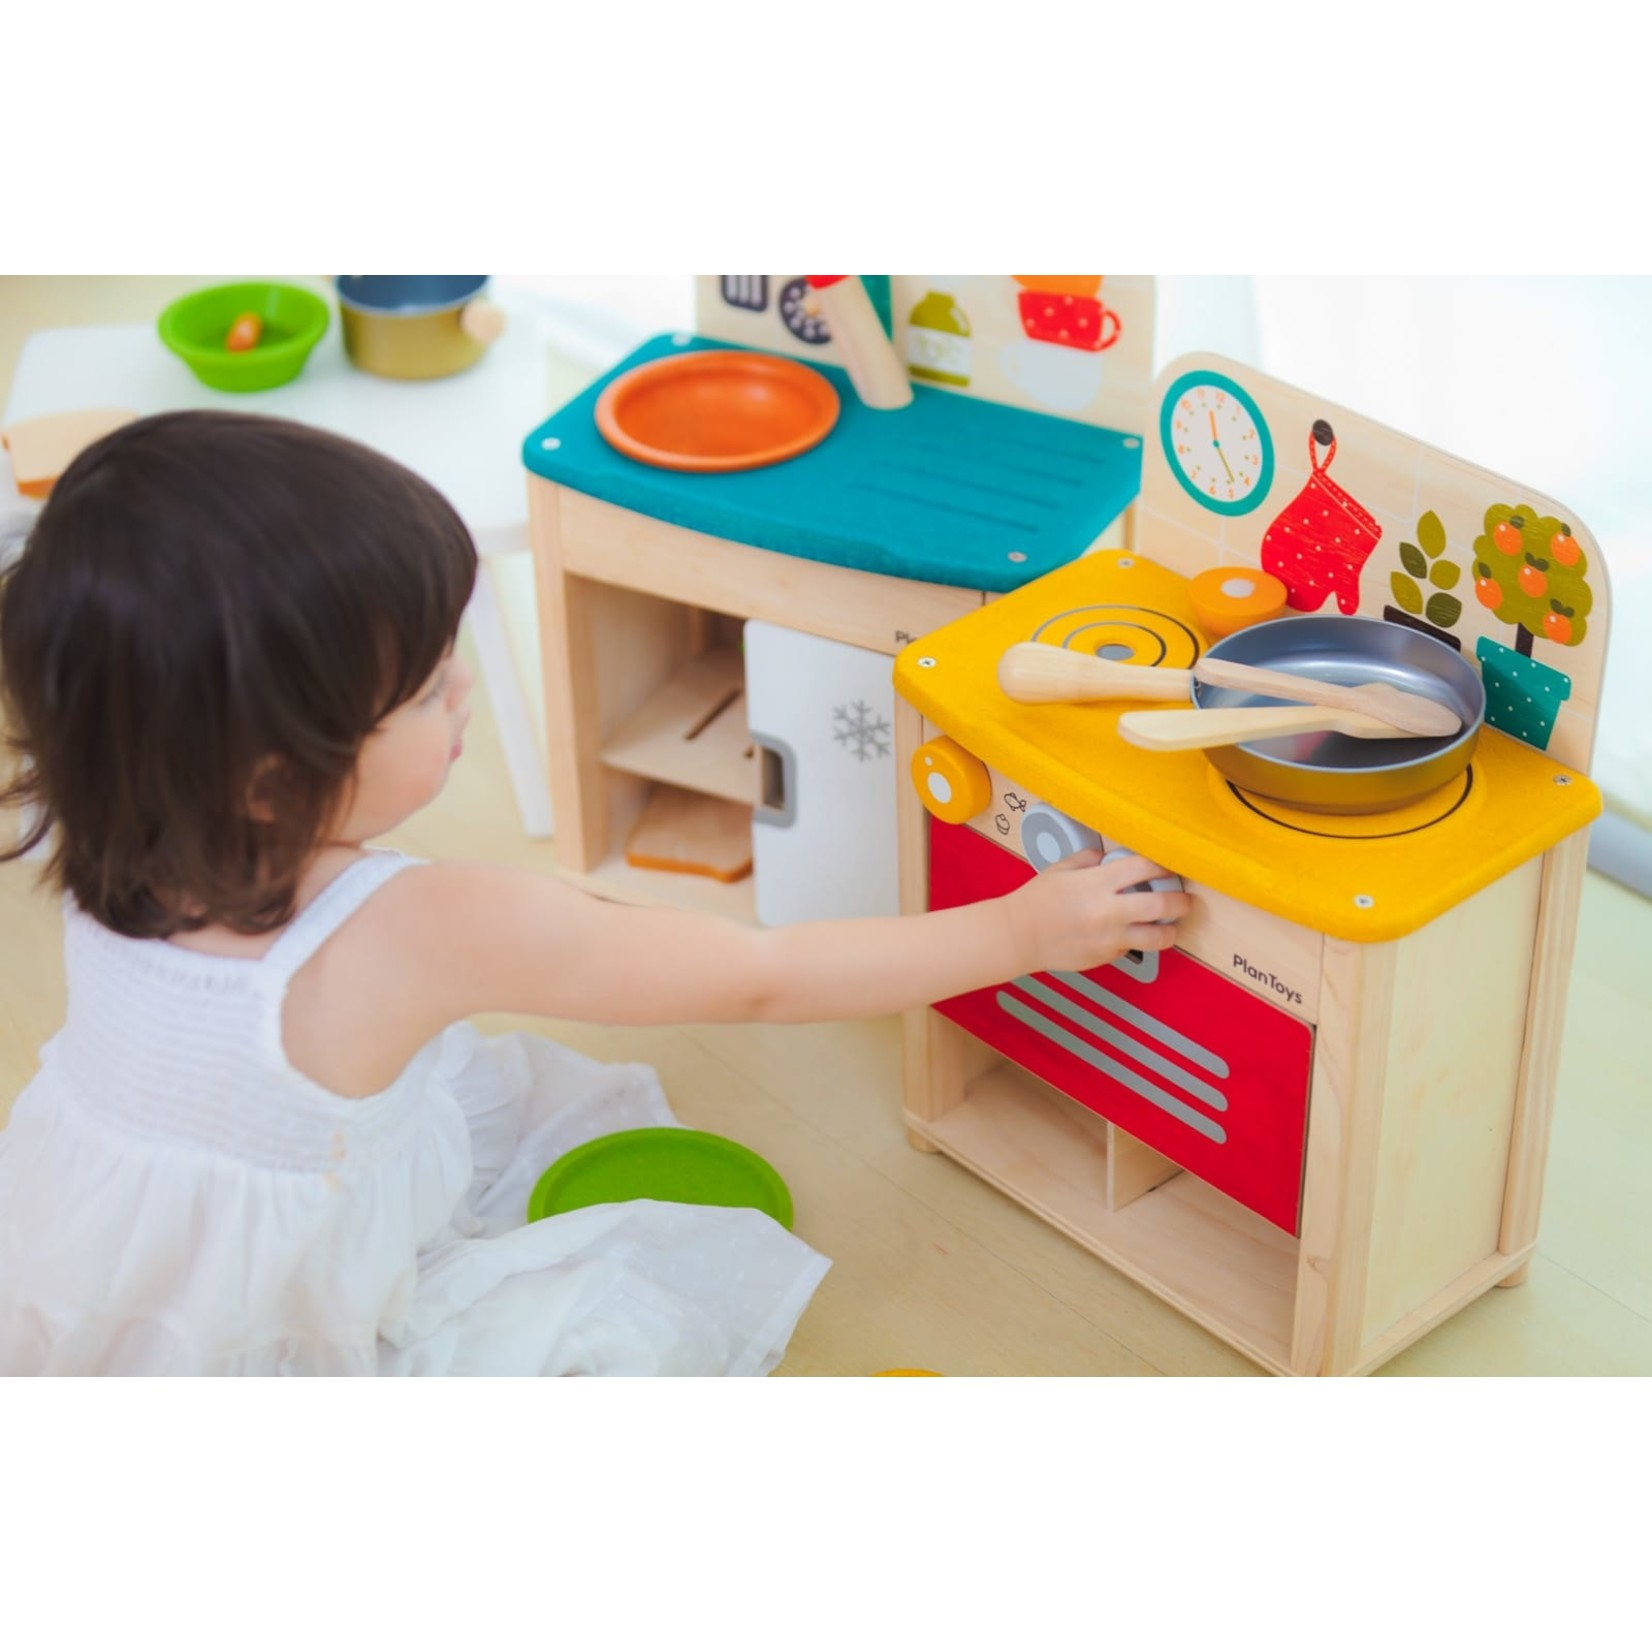 PLAN TOYS KITCHEN SET PLAN TOYS